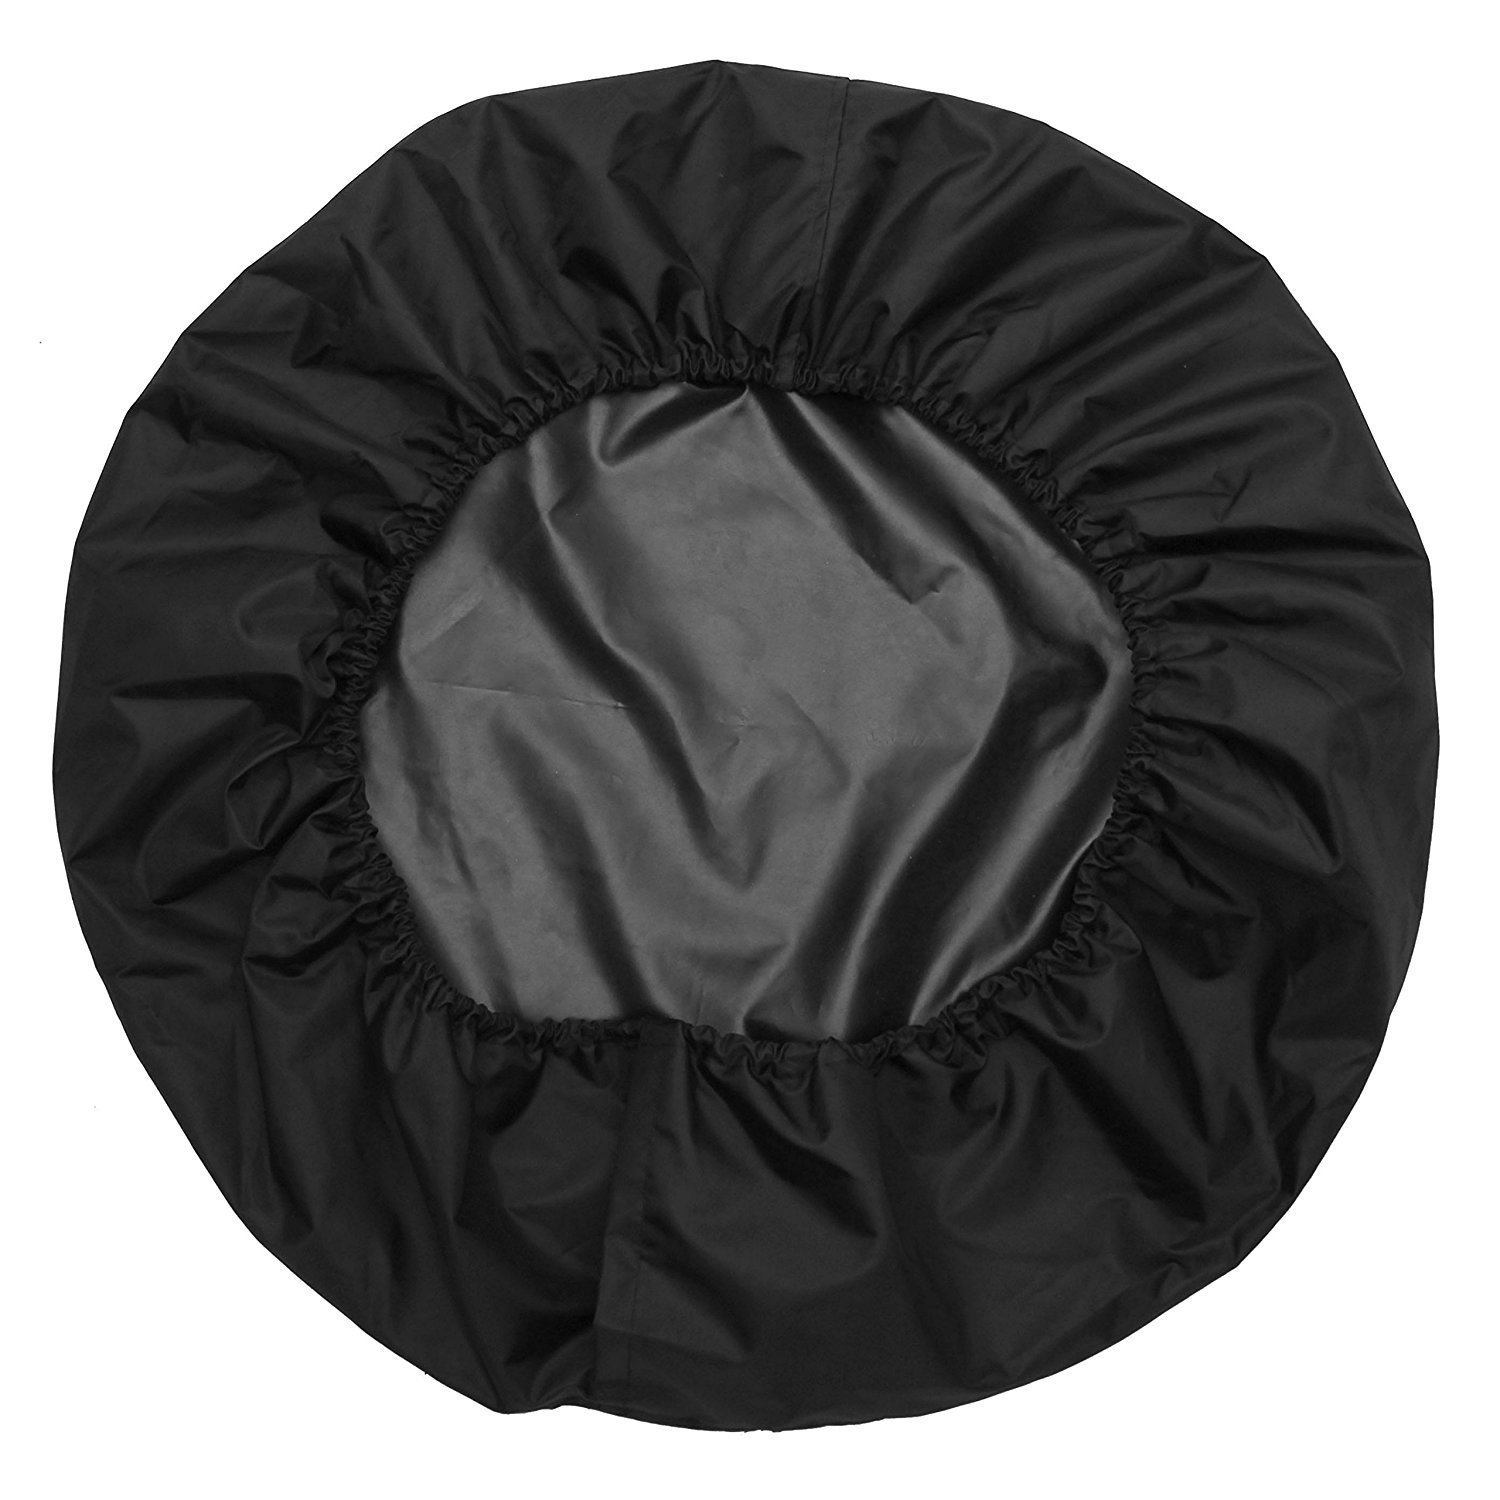 Universal Spare Tire Cover Black (16 inch) by Moonet (Image #4)